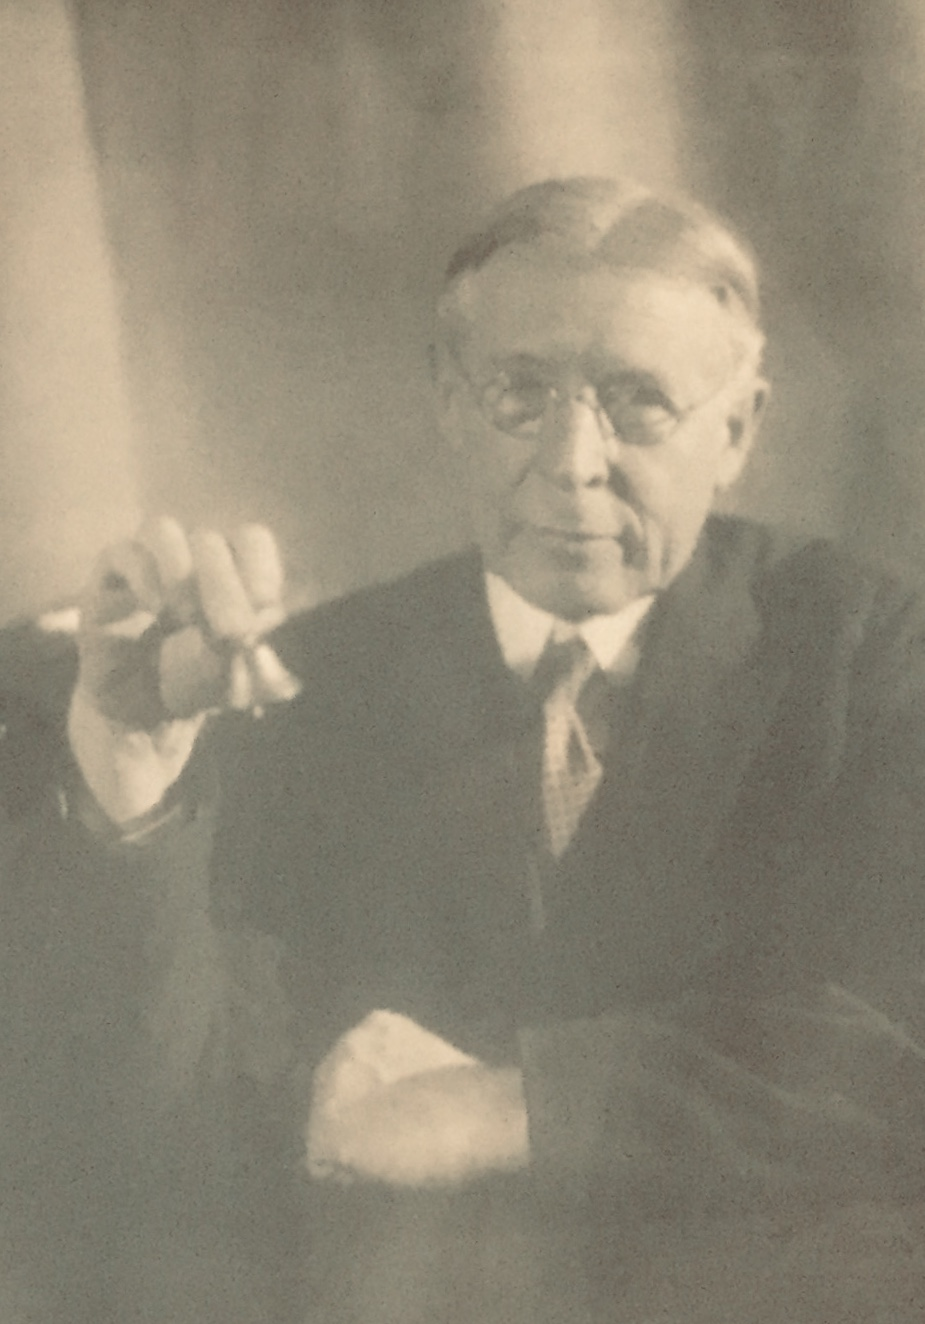 A picture of the eminent paleontologist John M. Clarke from his biography, which was in turn written by eminent paleontologist Charles Schuchert, published by the National Academy of Sciences: http://www.nasonline.org/publications/biographical-memoirs/memoir-pdfs/clarke-john-m.pdf .